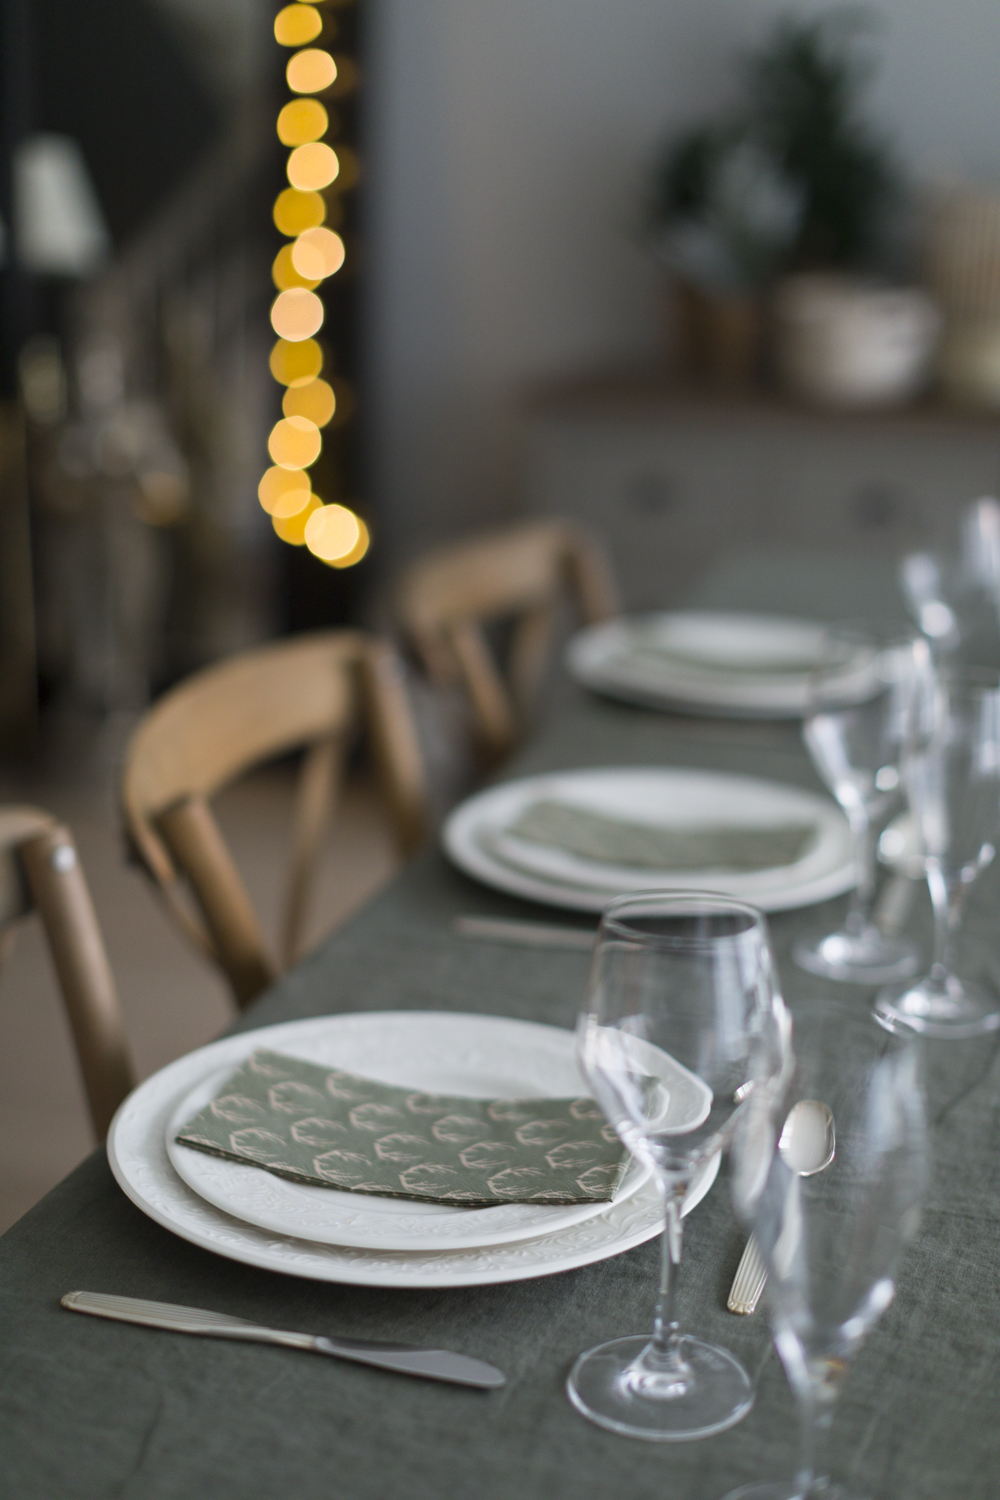 Christmas table the nordic way - typical scandinavian hygge with green and neutrals